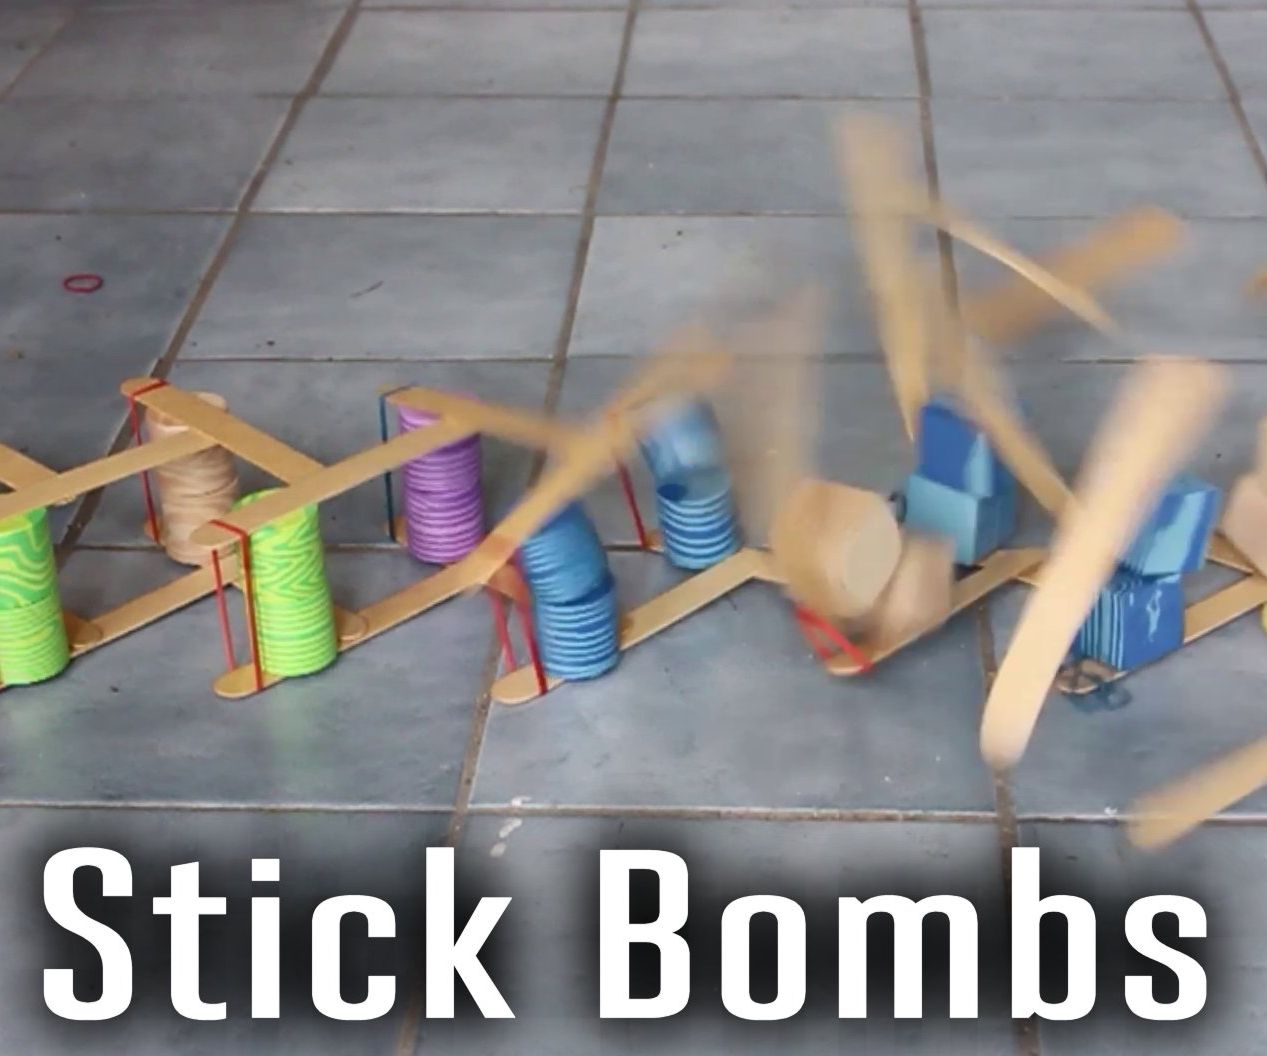 Stick Bombs (Exploding Kinetic Art)